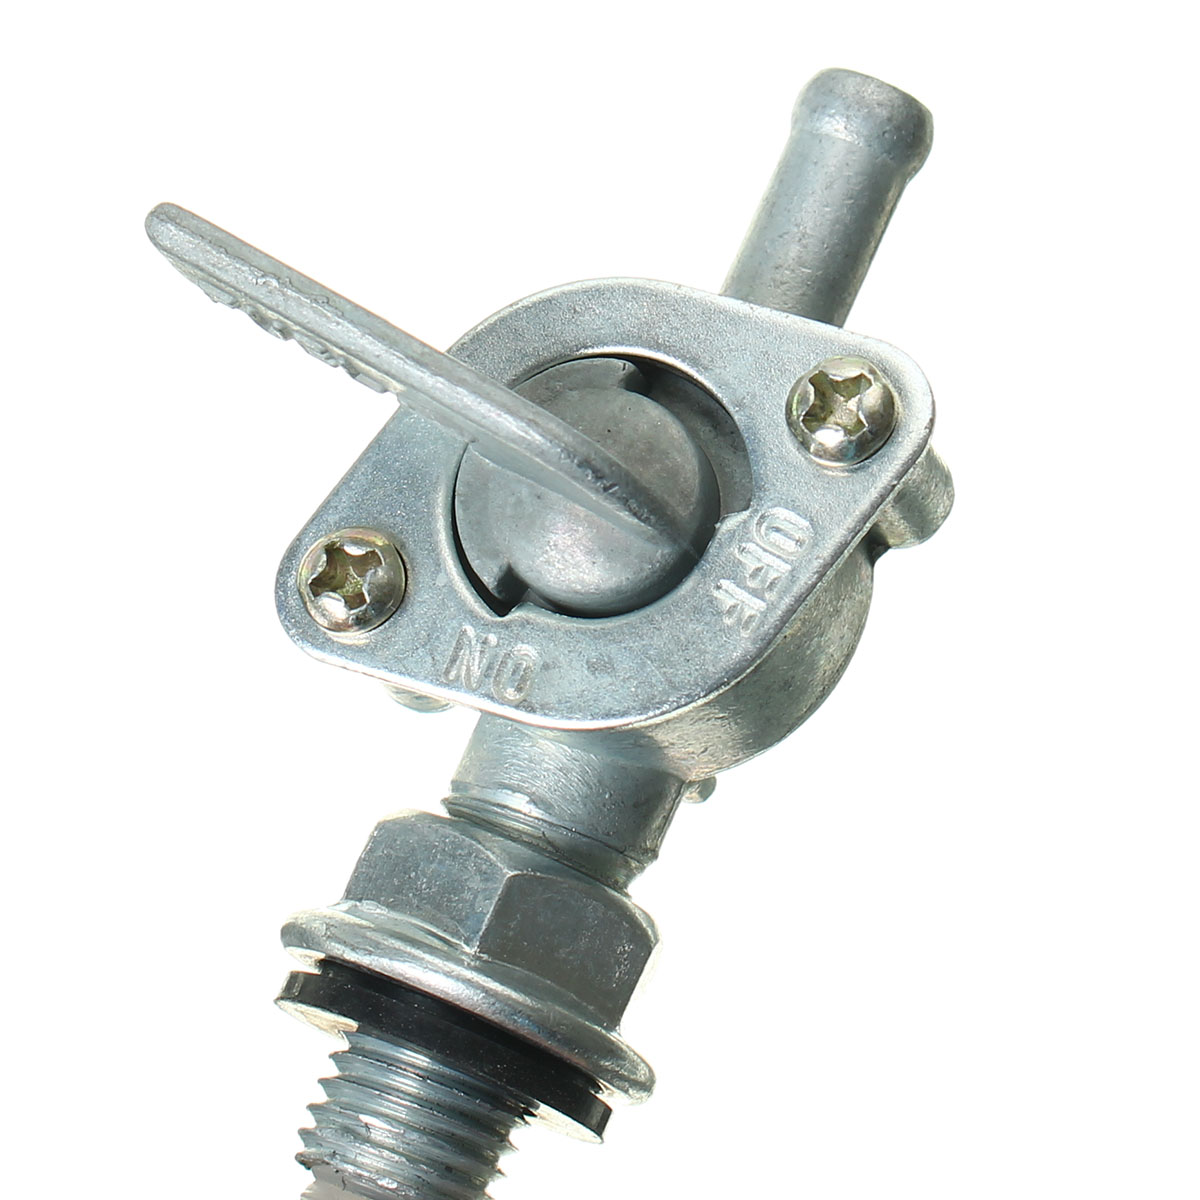 Male Threads MOTORIZED BICYCLE FUEL VALVE PETCOCK